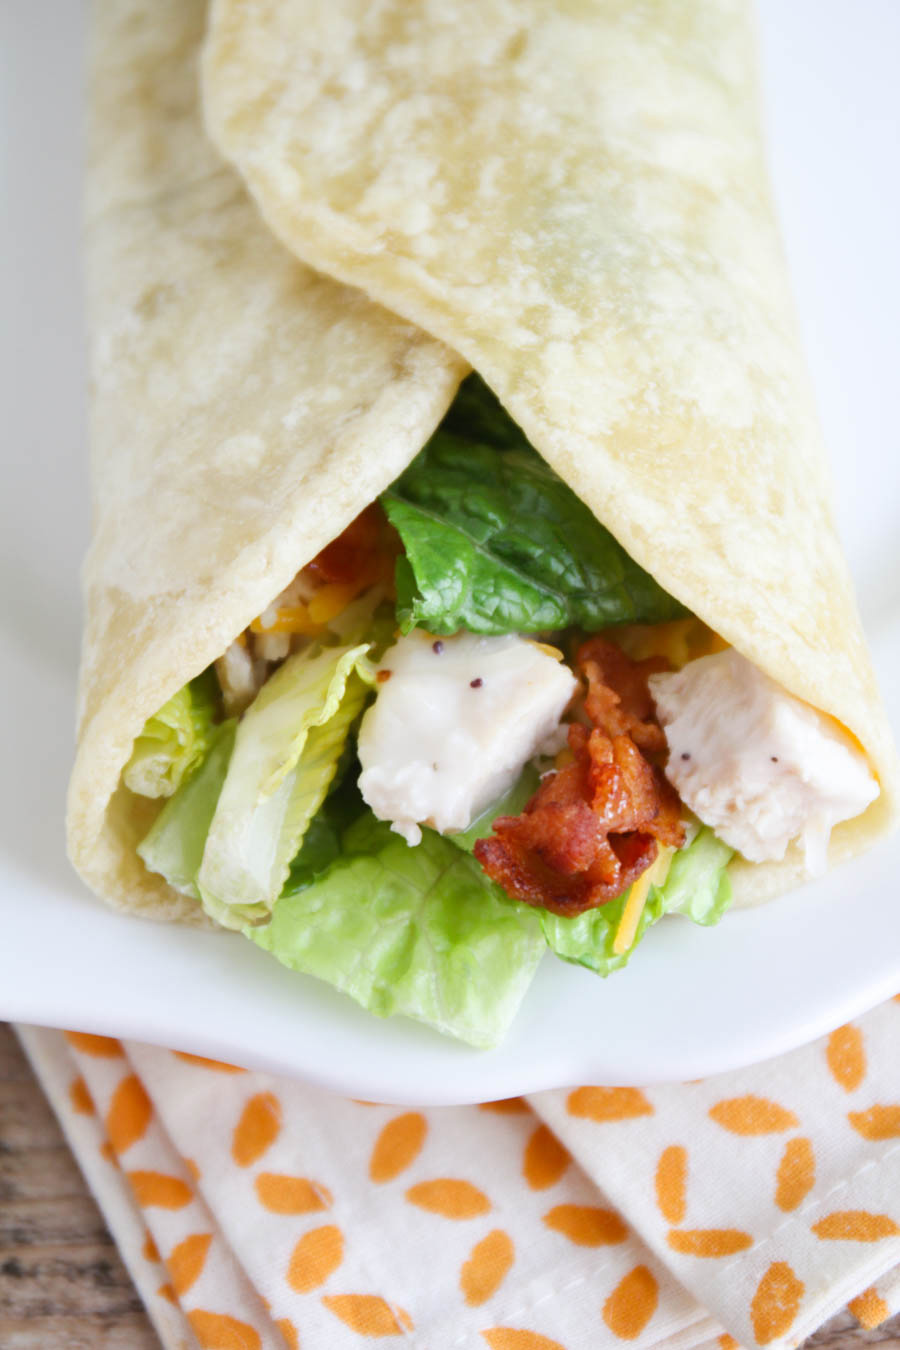 These simple and delicious chicken club wraps are the perfect easy lunch!